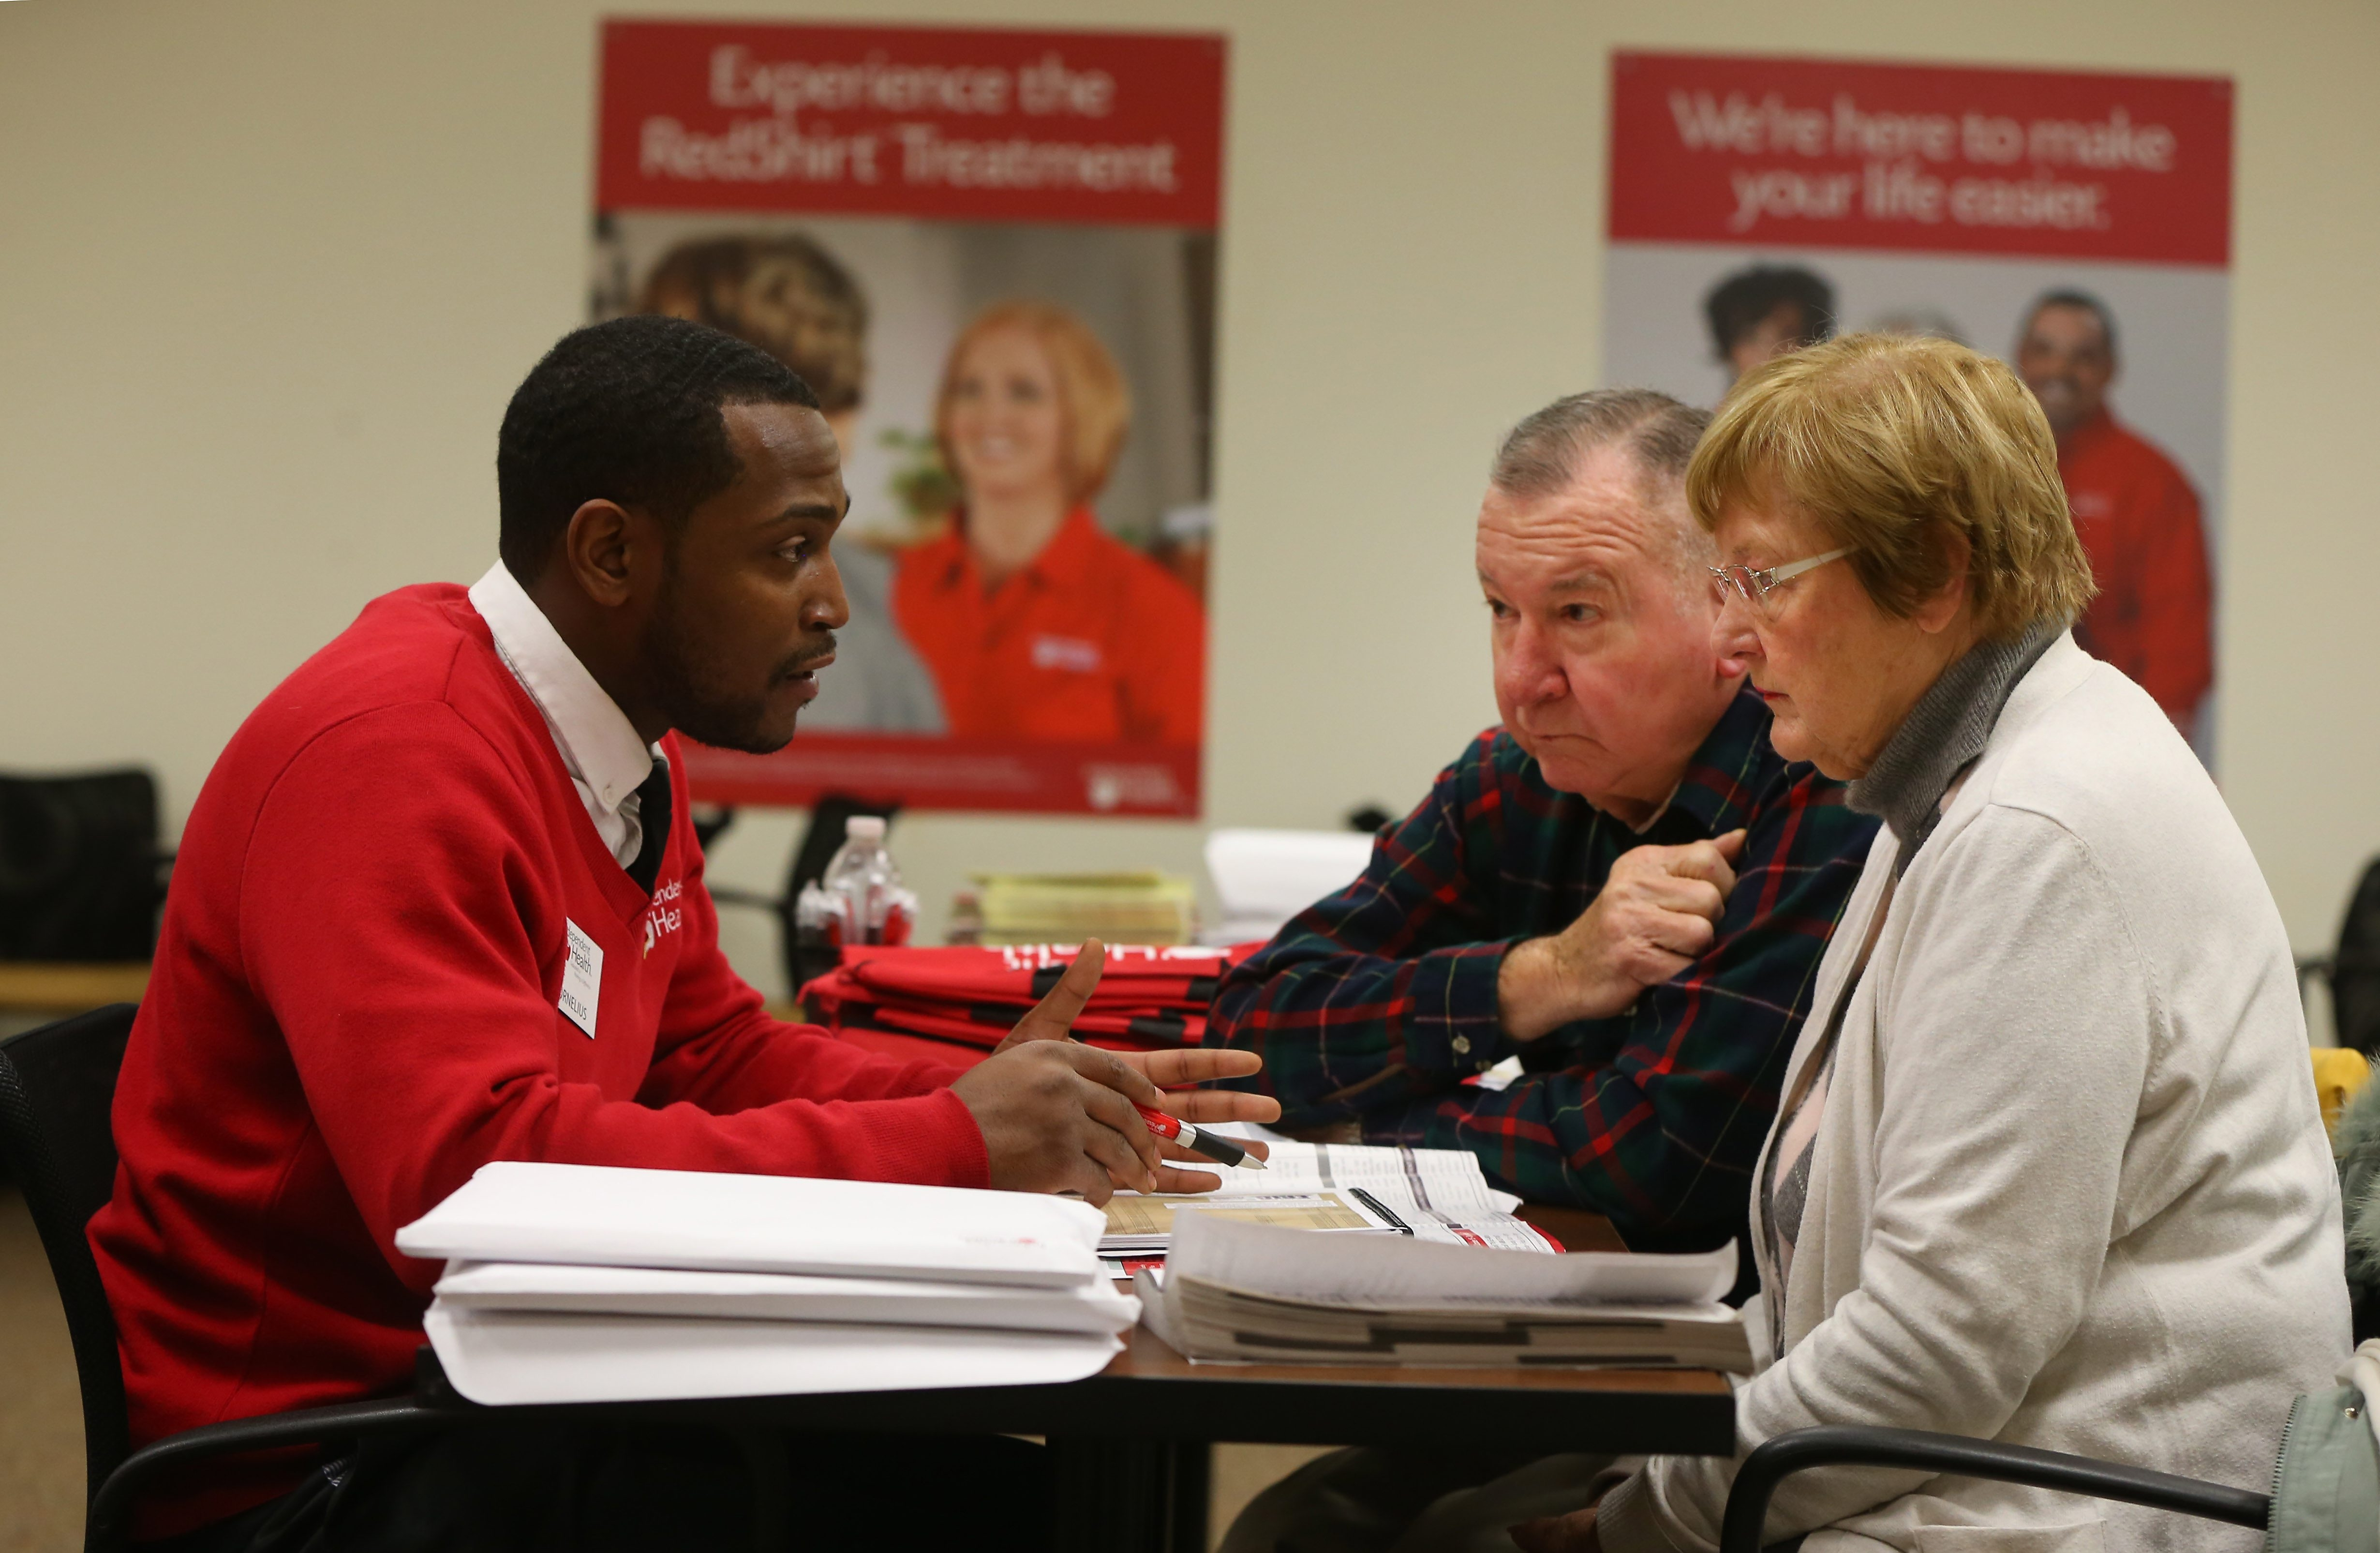 Independent Health's Cornelius DeLaney explains health insurance options to Stephen and Marlene Kotlowski at the Independent Health office in Depew on Friday.